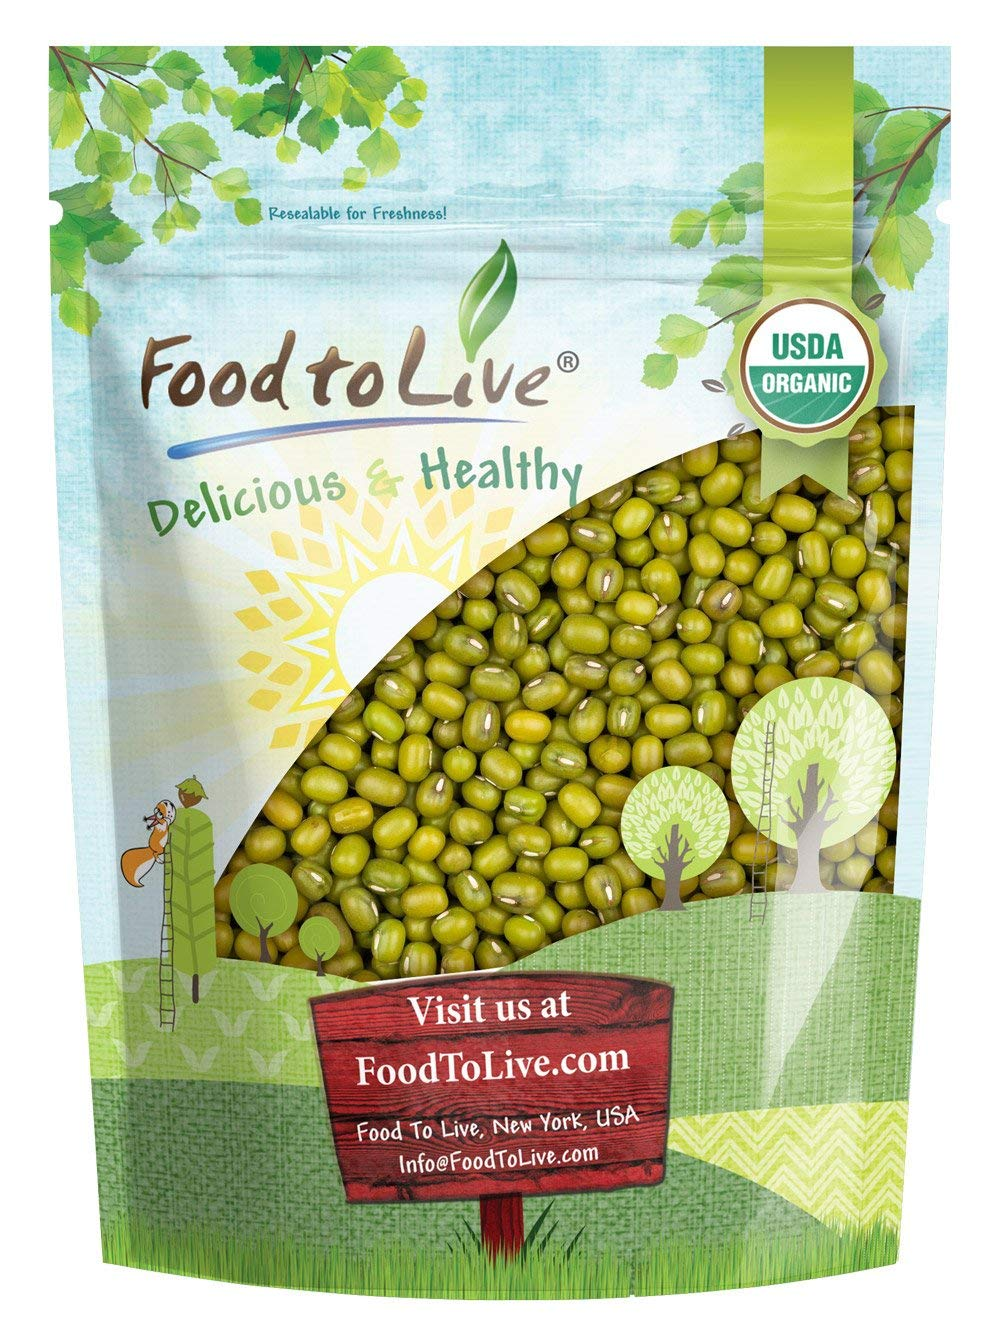 Certified Organic Mung Beans by Food to Live (Sprouting, Non-GMO, Kosher, Bulk) — 3 Pounds